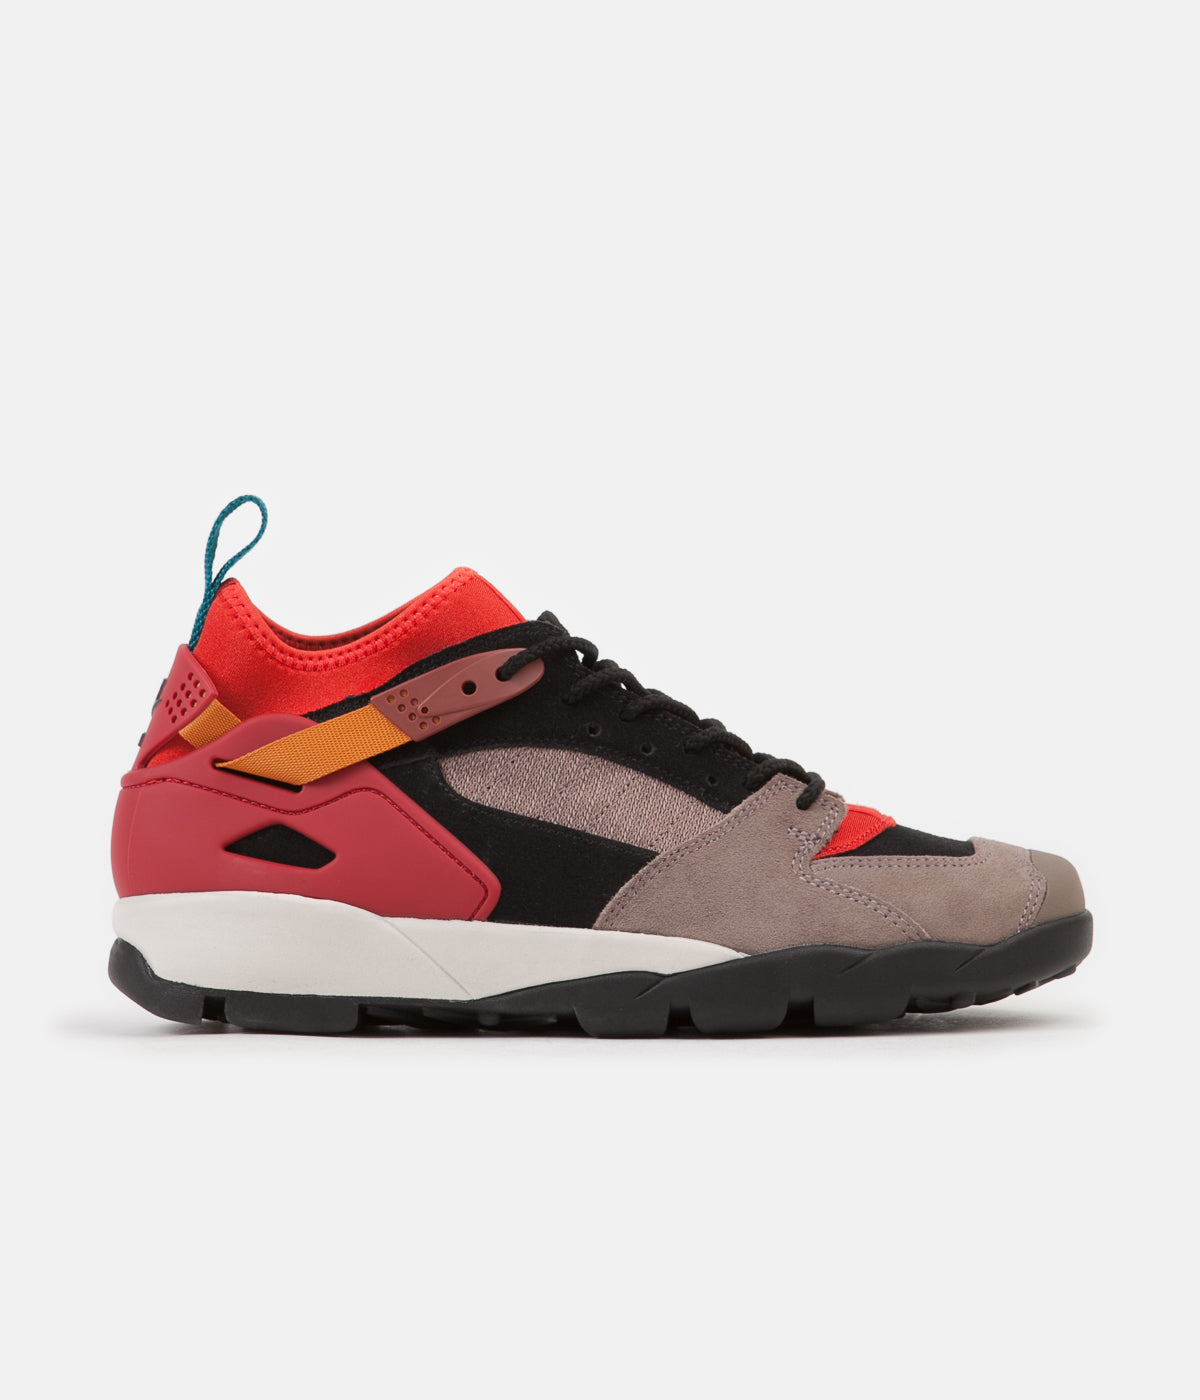 Nike Acg Gym Air Red Teal Revaderchi Geode Habanero Shoes 1TFJ3Klc